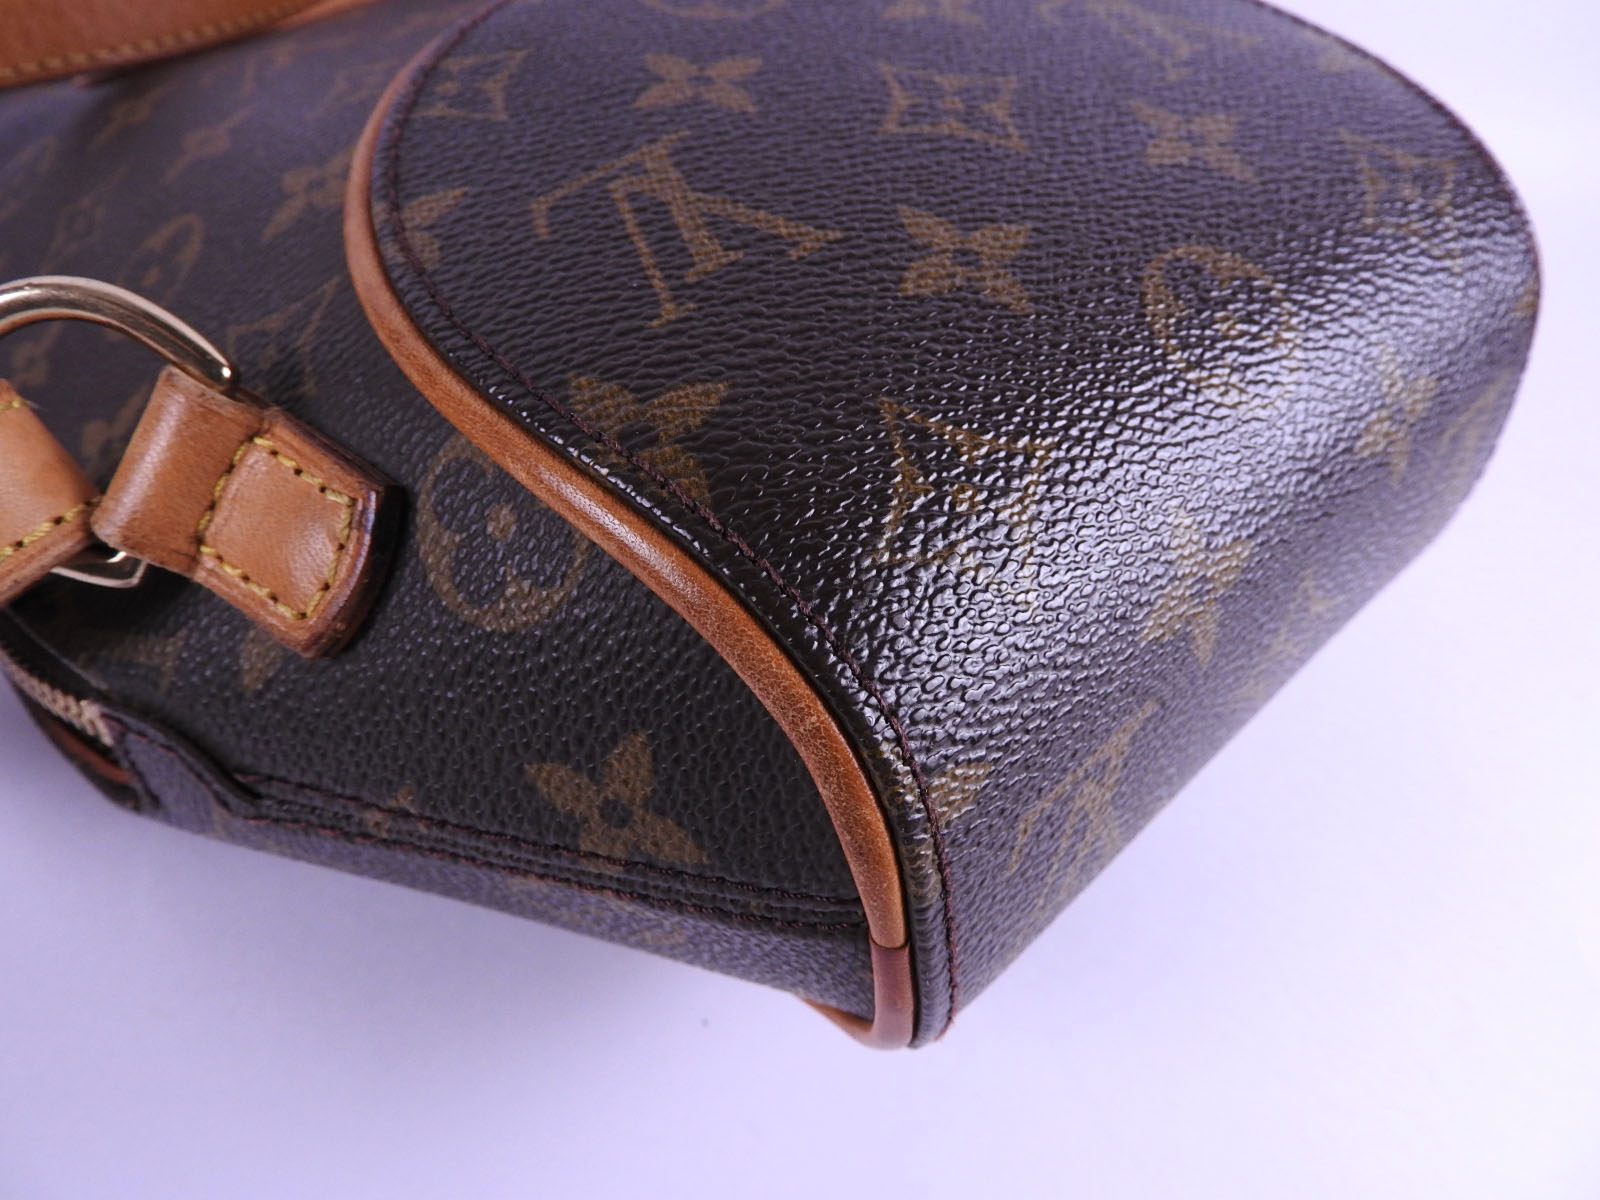 f45e665f2b52 Authentic LOUIS VUITTON Ellipse Sac A Dos Monogram Backpack Bag ...